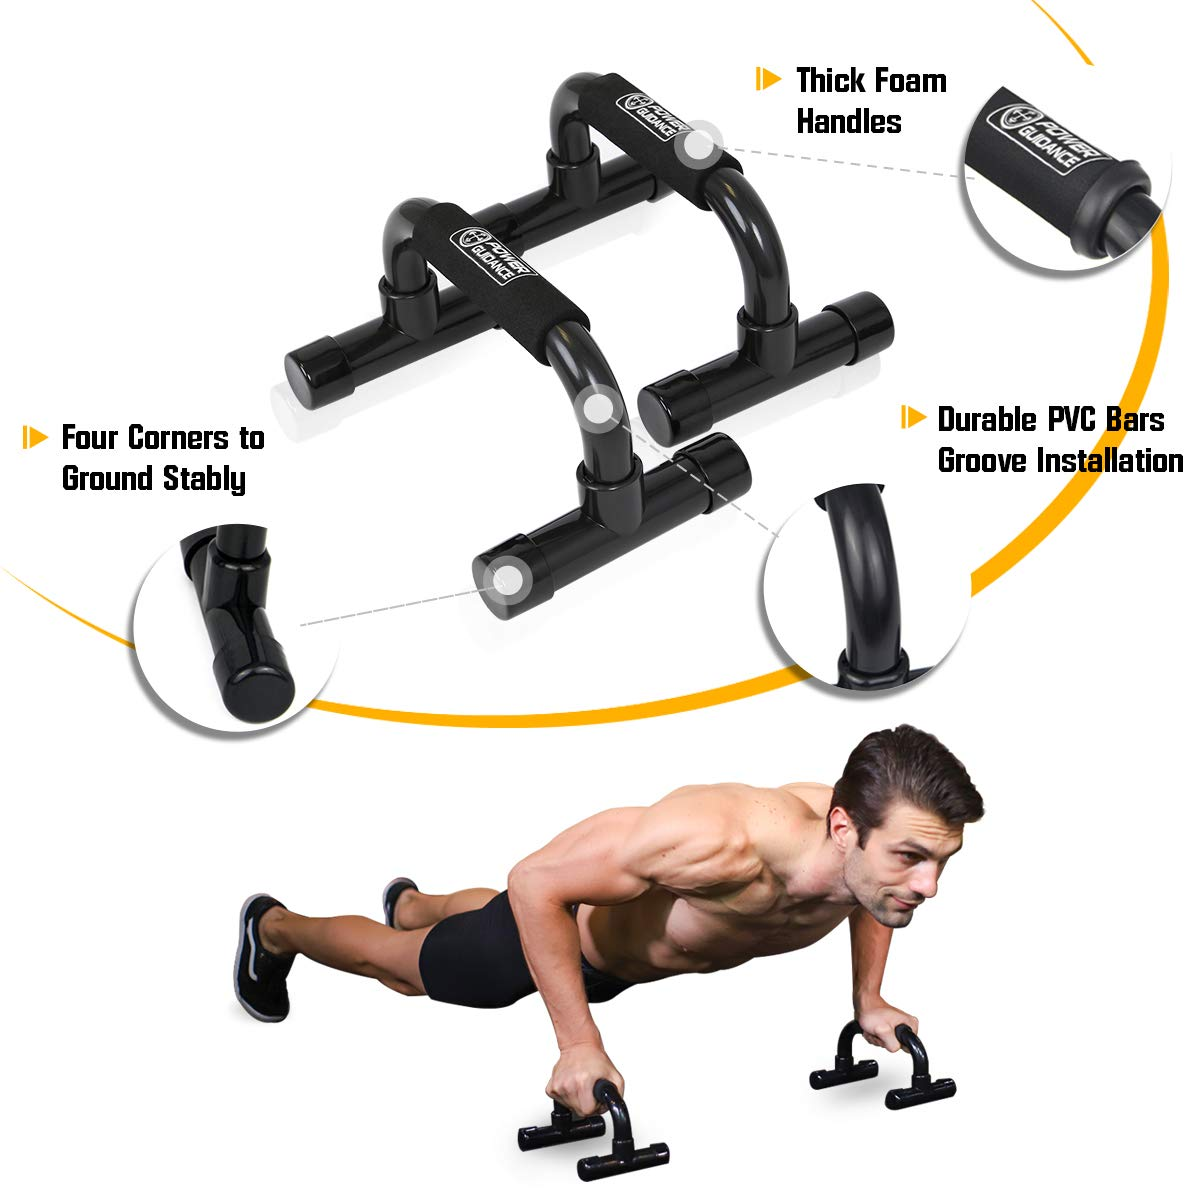 Sportplus Rotating Push Up Handles Complete Set with Accessories Max User Weight 120 kg